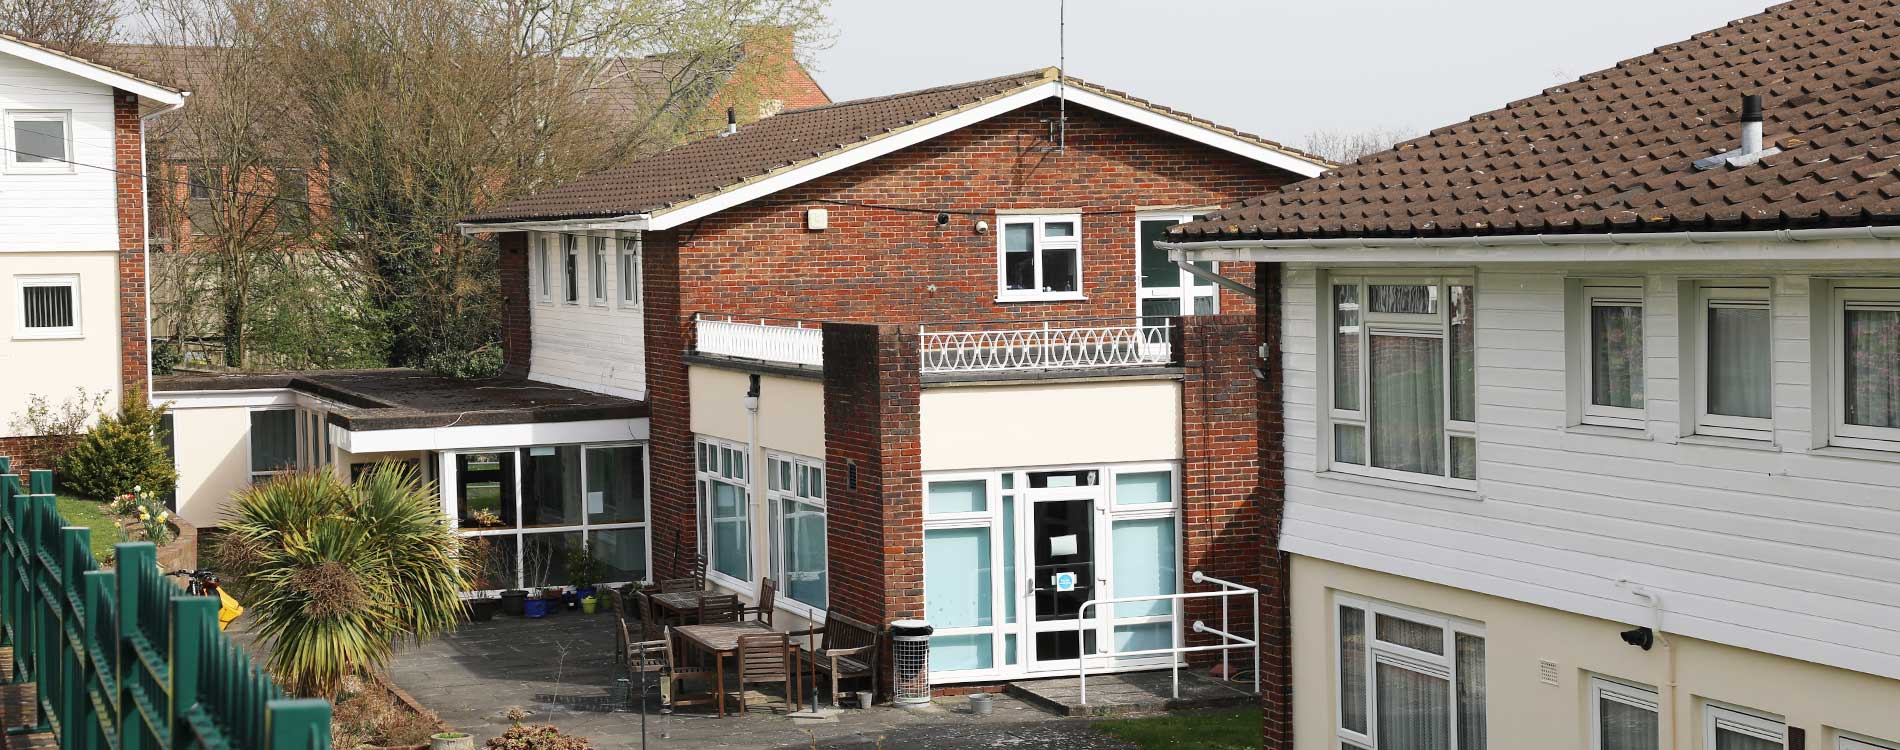 exterior of a sheltered housing block after cyclical decorations were complete